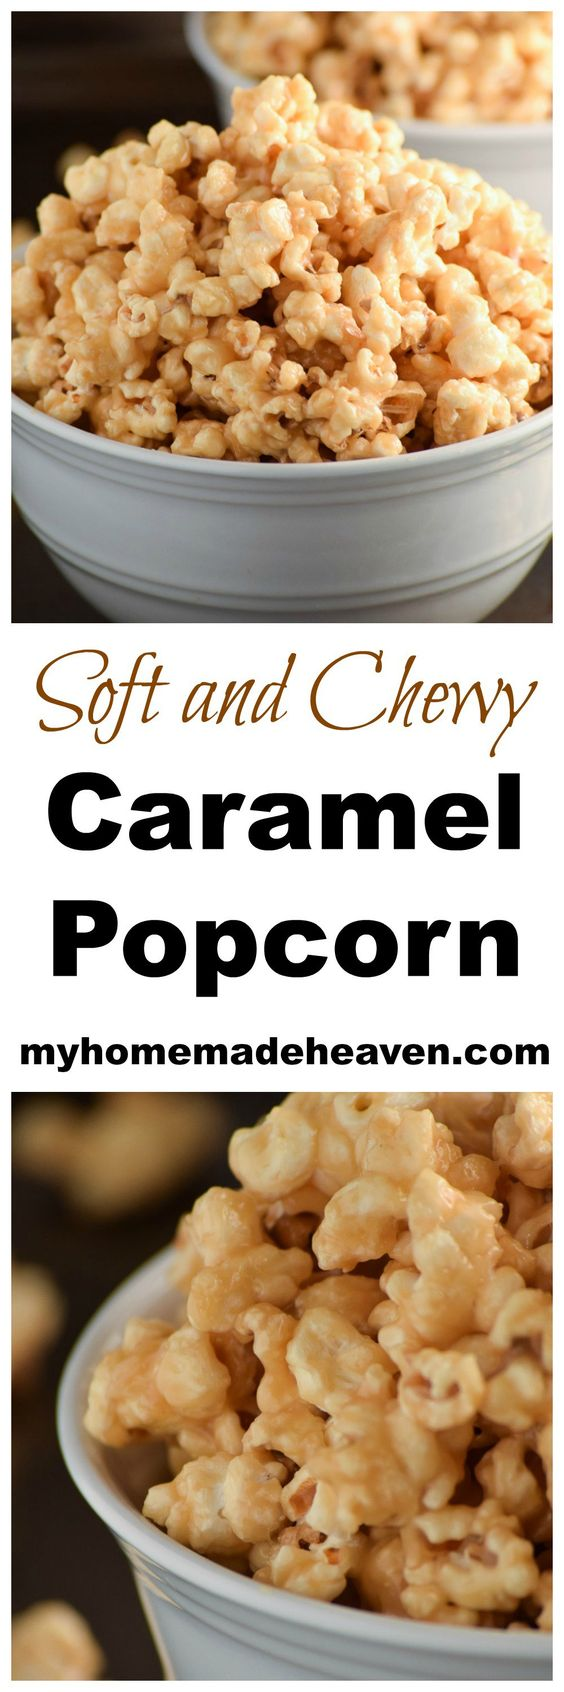 Oh my, this popcorn is so good!! We couldn't stop eating it! And she includes a way to make it healthier too! Pin now! Save for later!